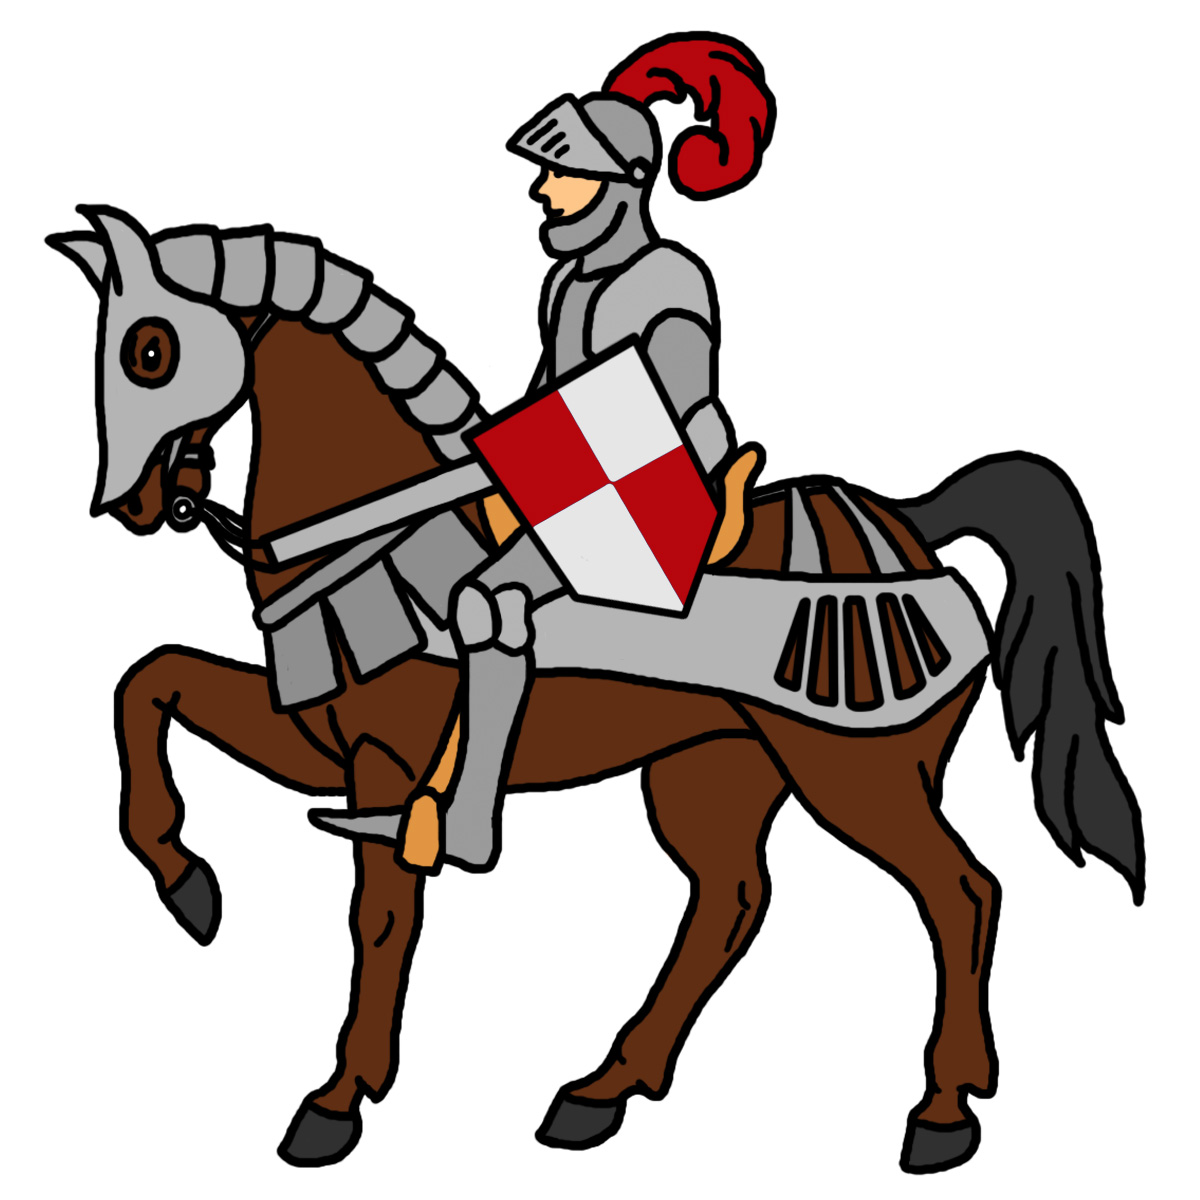 Knights of the round table clipart